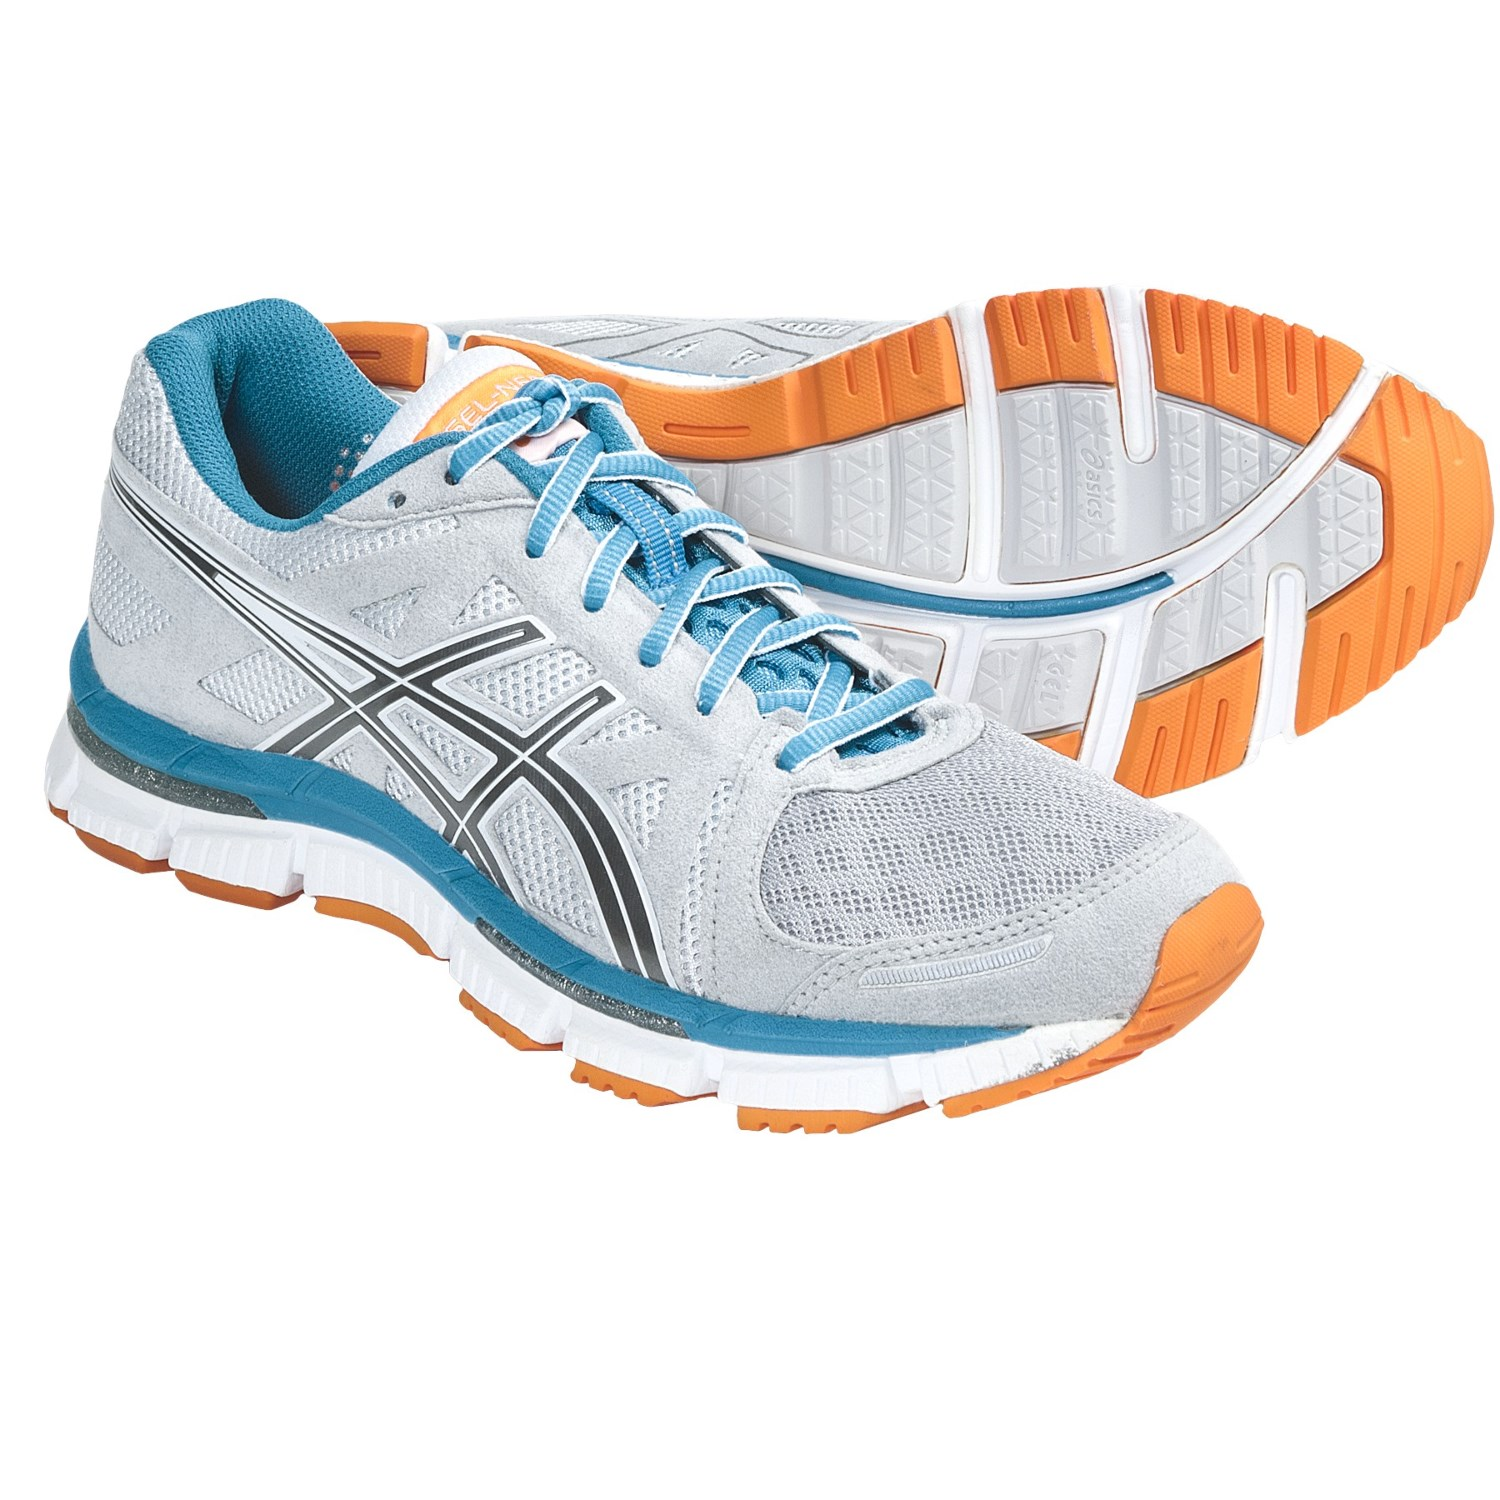 Neon Asics Running Shoes Women